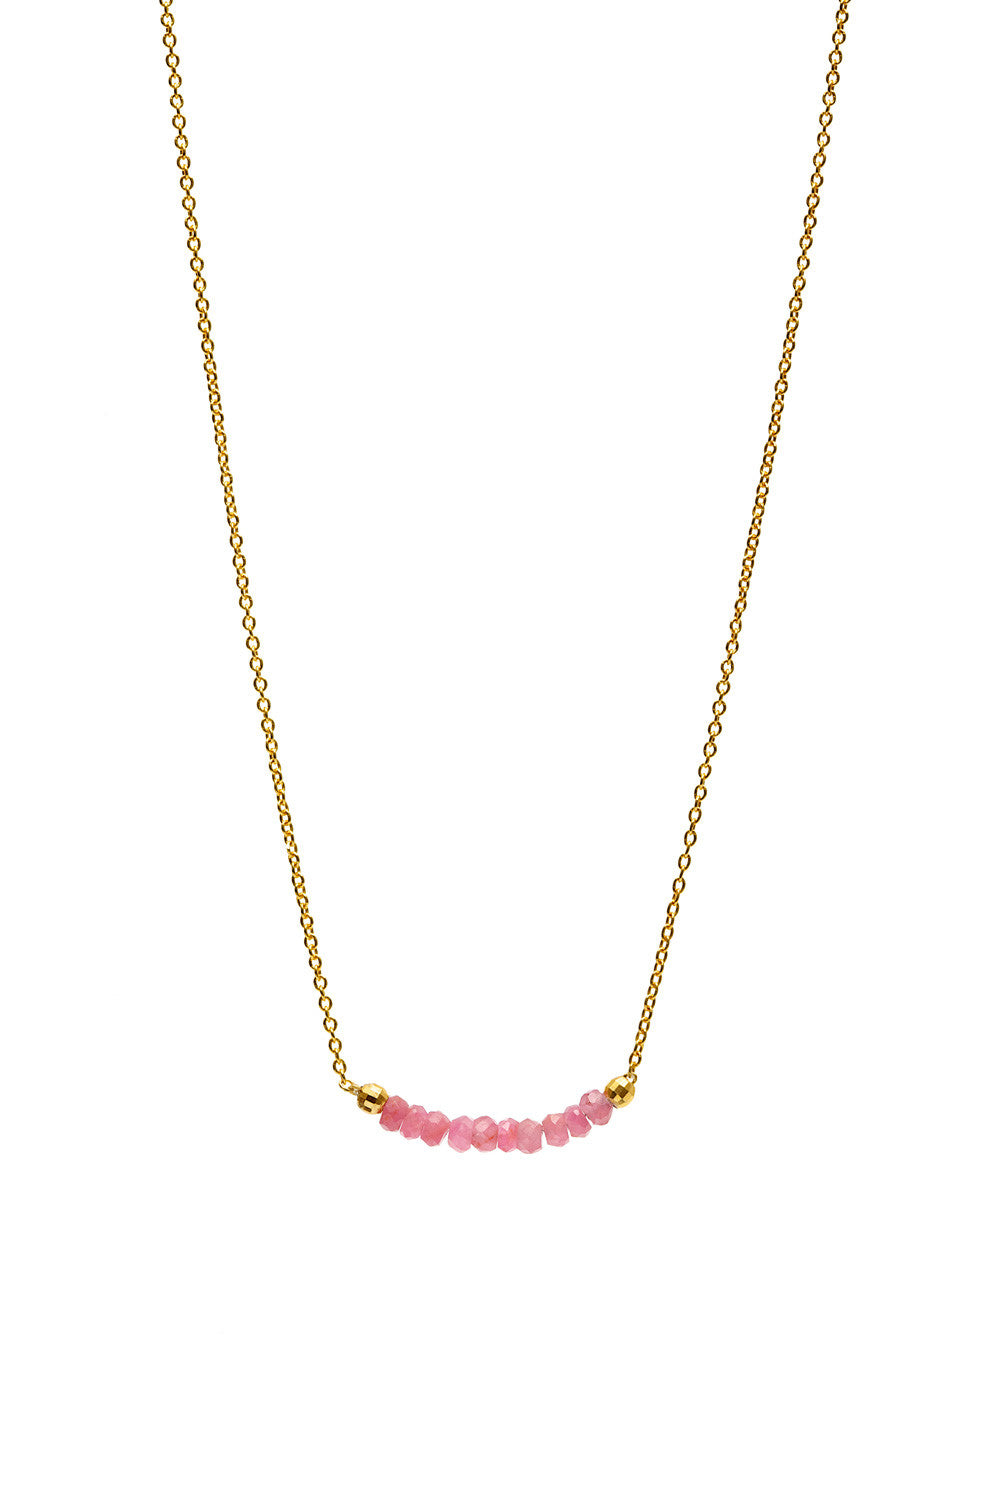 nancy catbird sapphire kraskin disc nancykraskin pinksapphirediscnecklace necklace pink save